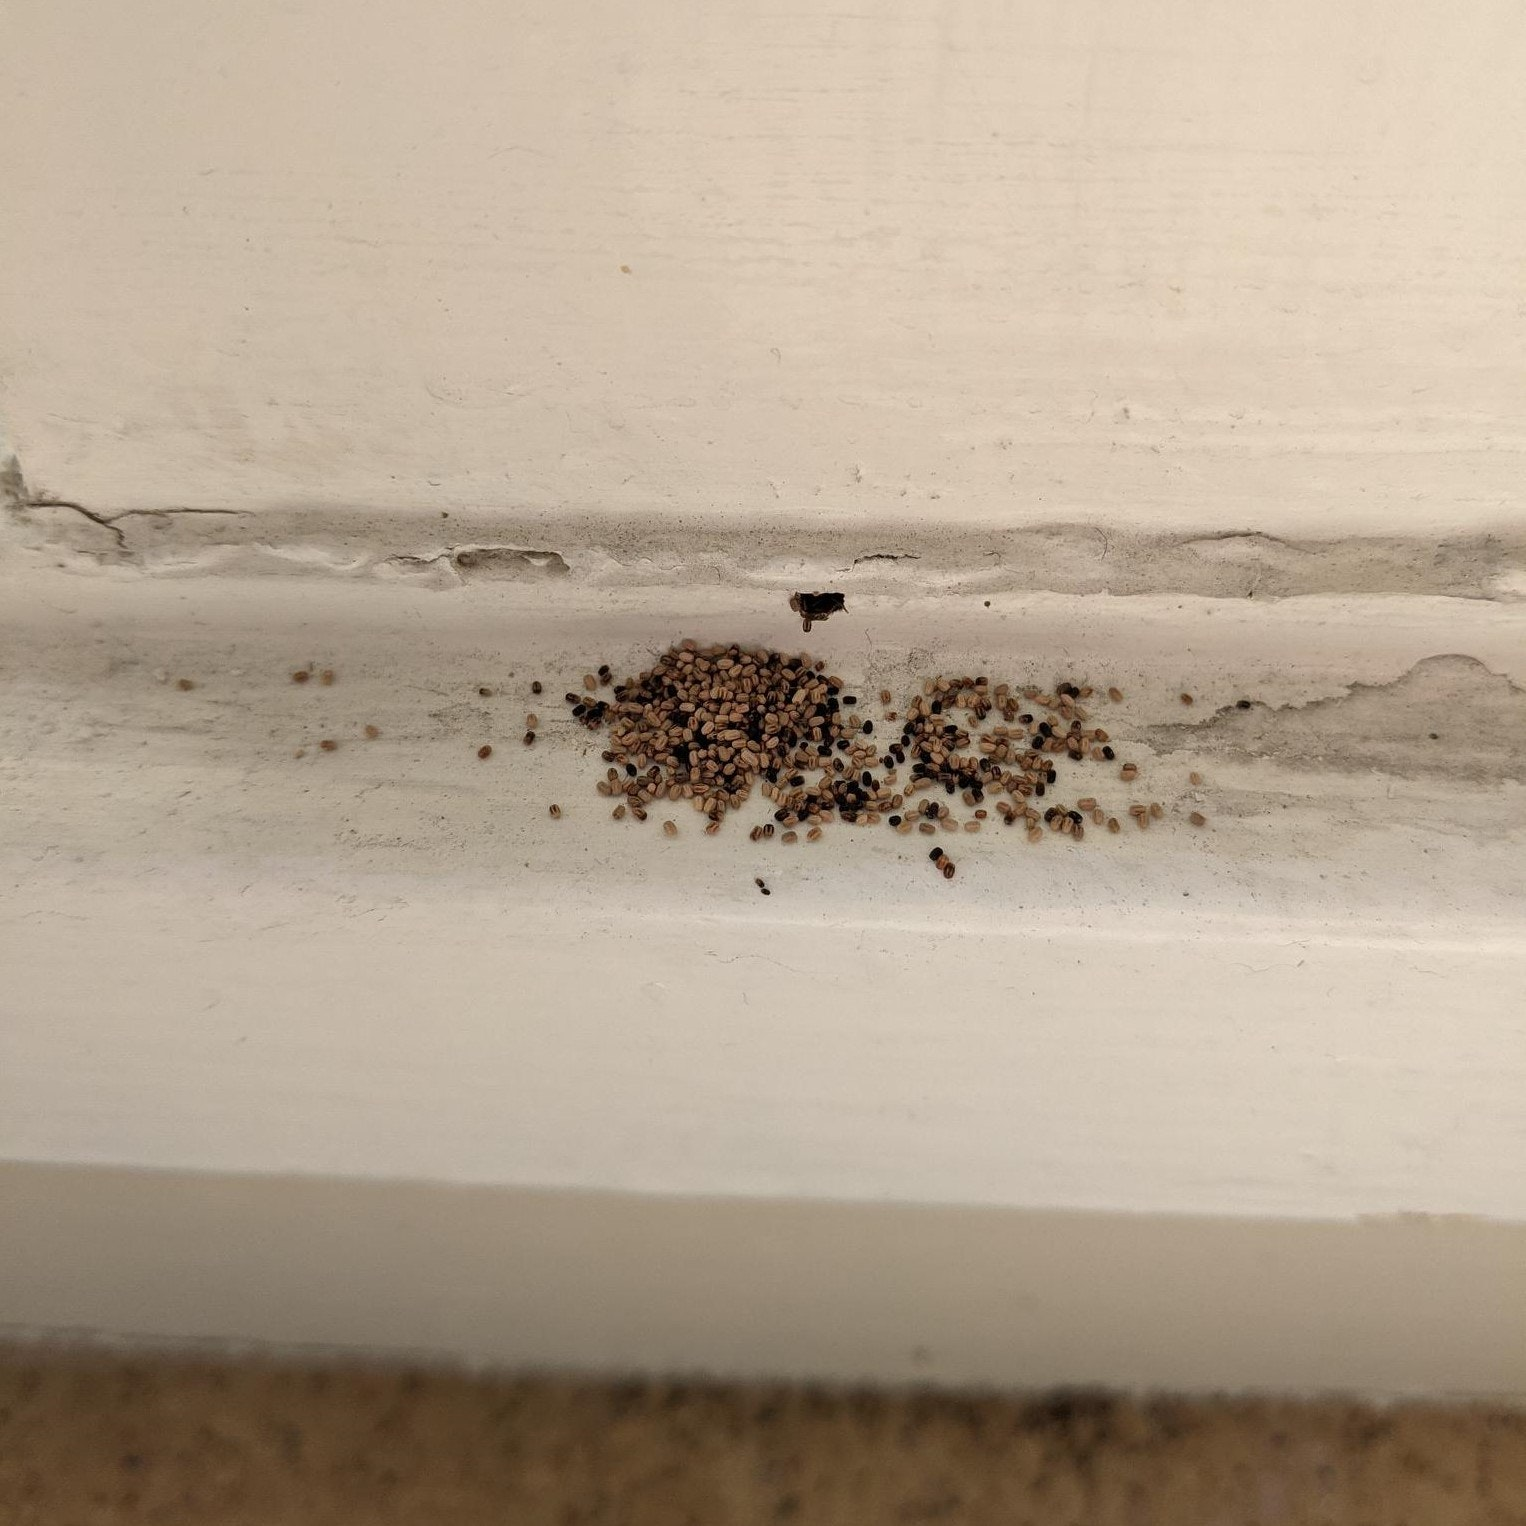 A creamcolored wall and baseboard meet the floor. Along the narrow top of the baseboard, there are lots of very small brown pellets. These are termite frass (feces).